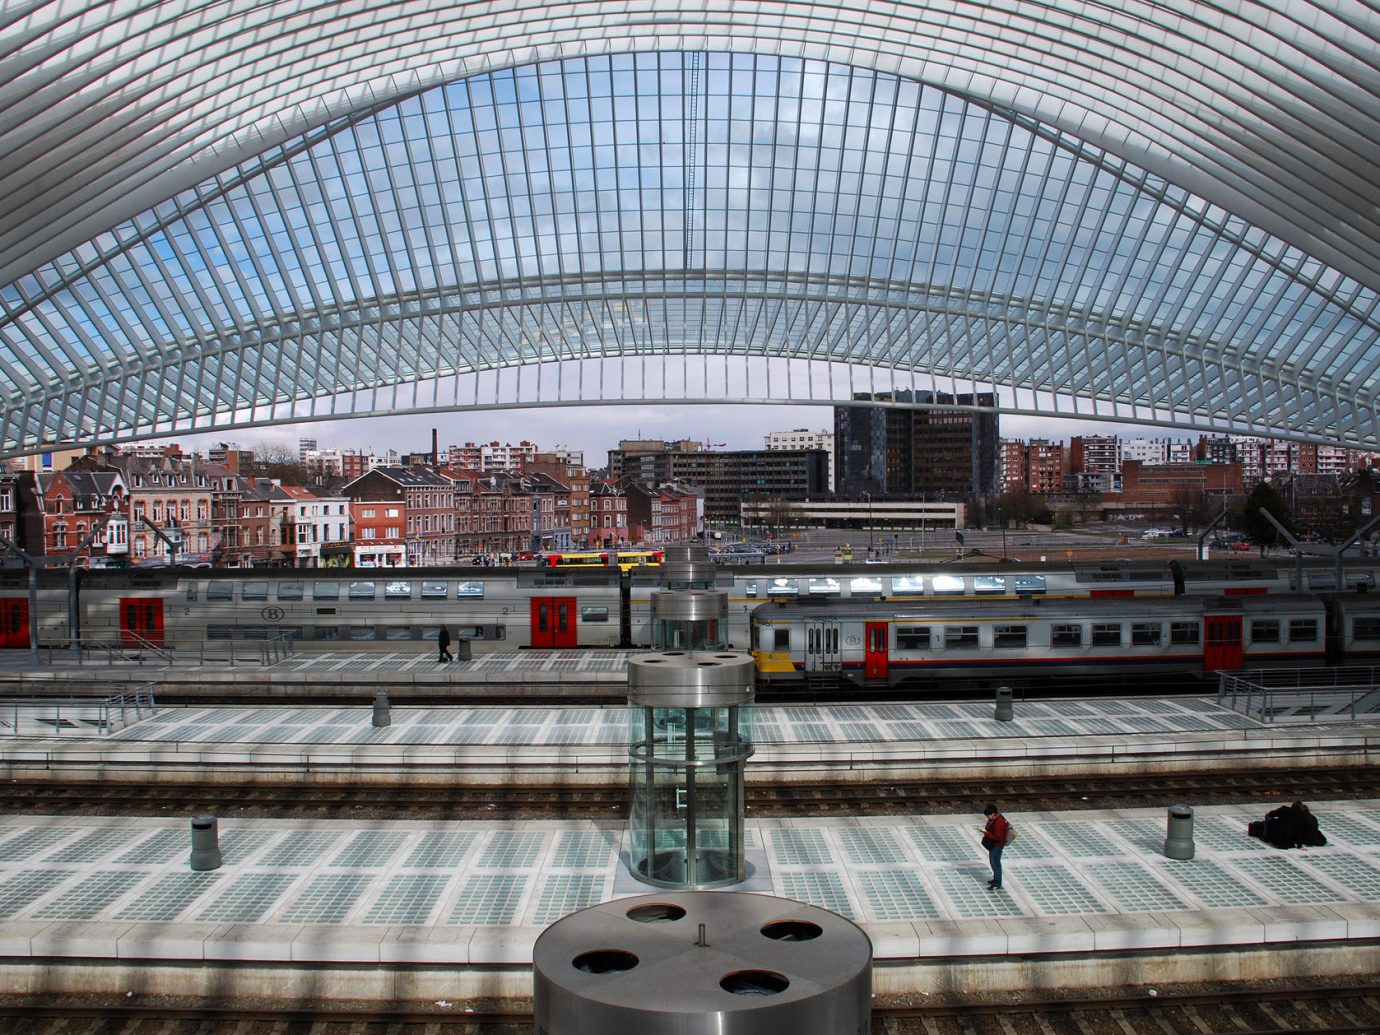 Trip Ideas indoor structure transport train station building station public transport sport venue Architecture stadium arena airport terminal infrastructure metro station airport rapid transit subway